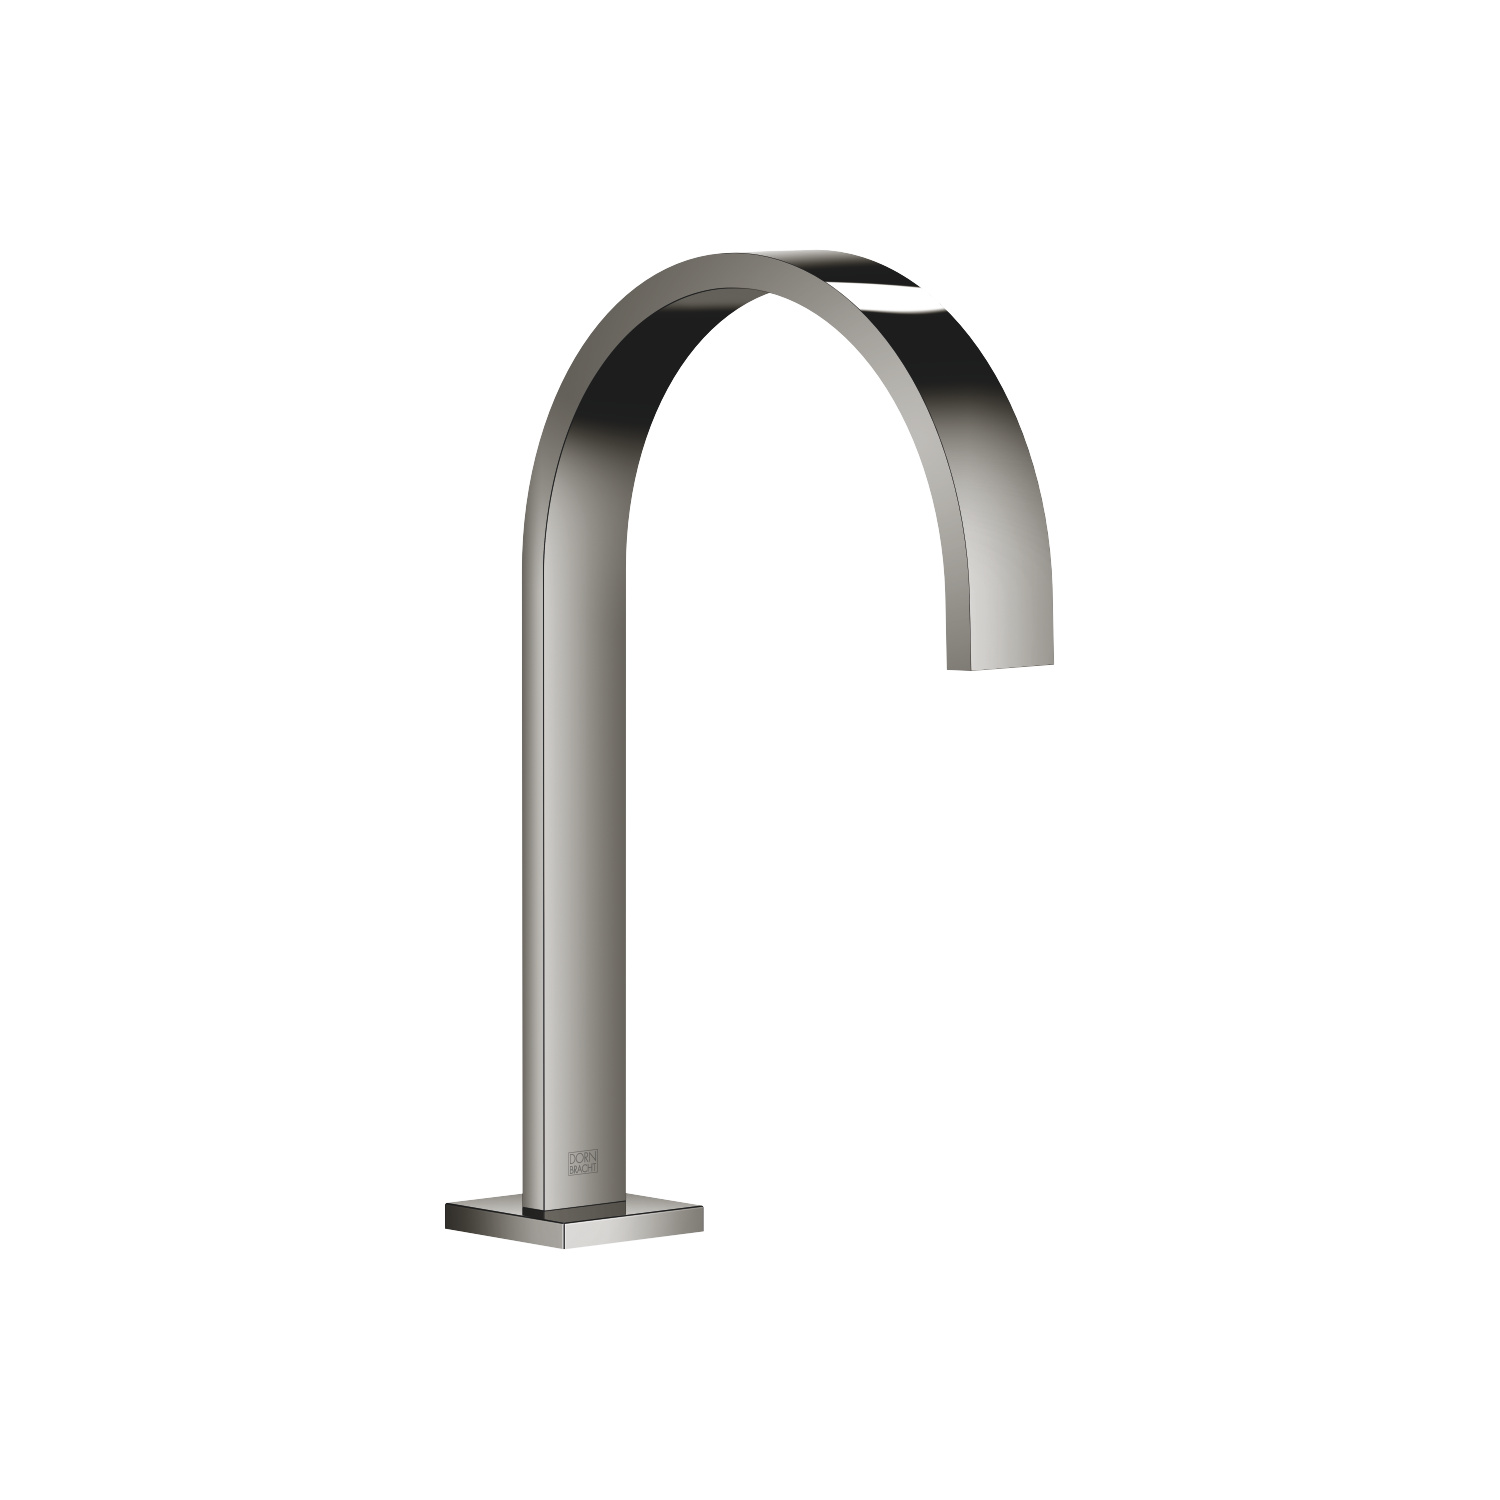 Deck-mounted basin spout without pop-up waste - platinum